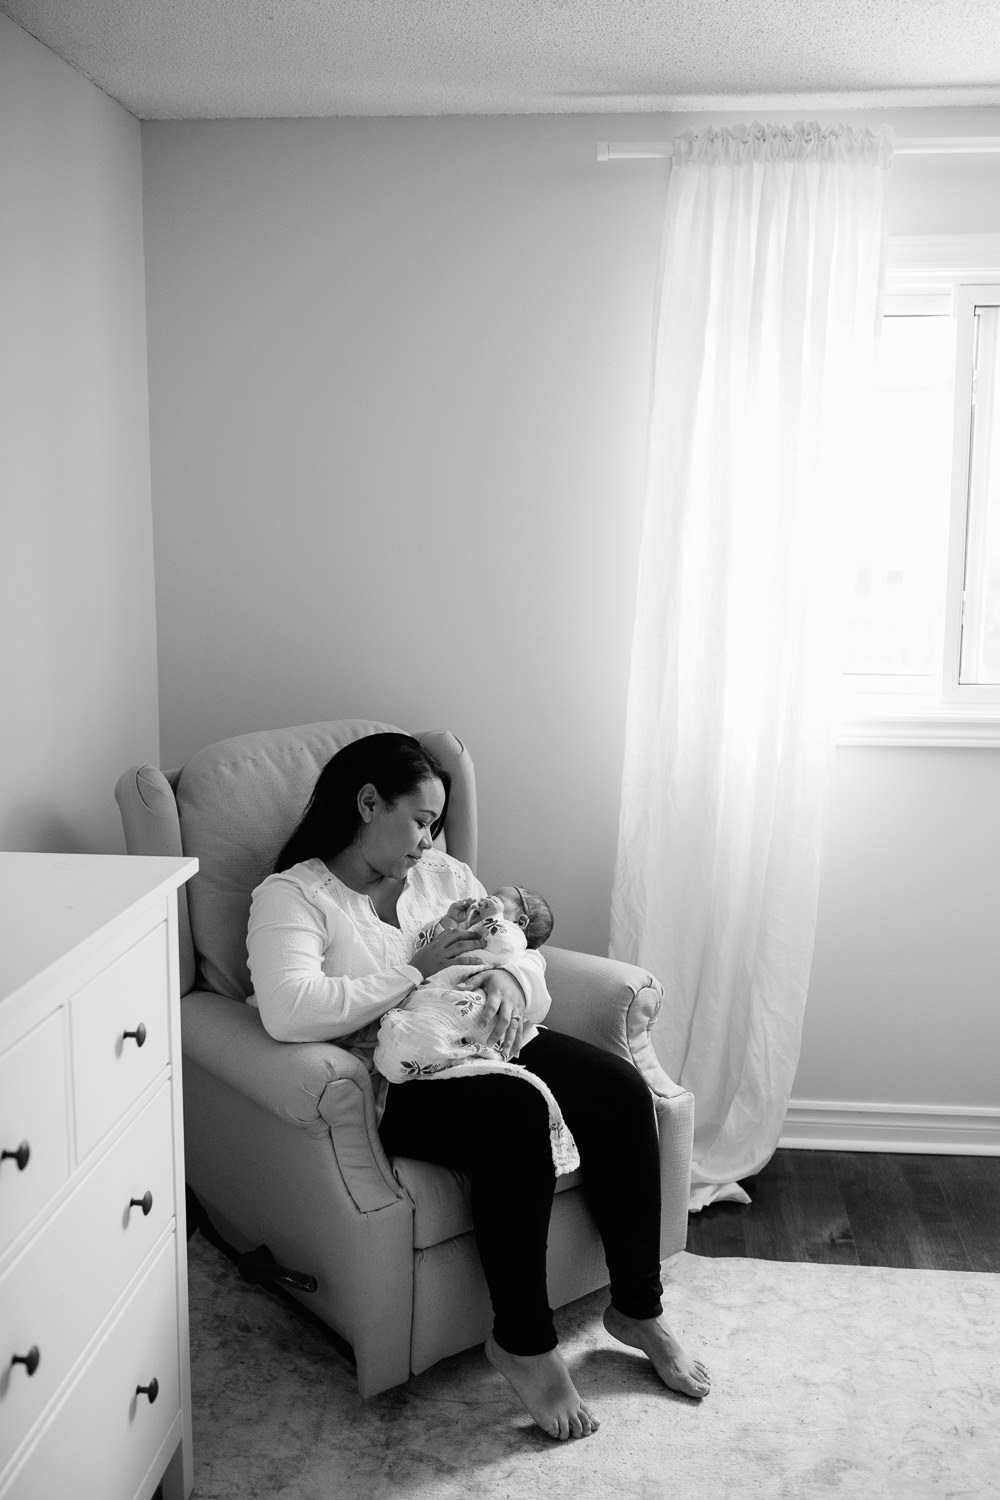 mother sitting in nursery glider chair holding and looking at 2 week old baby girl wrapped in swaddle -GTA Lifestyle Photography